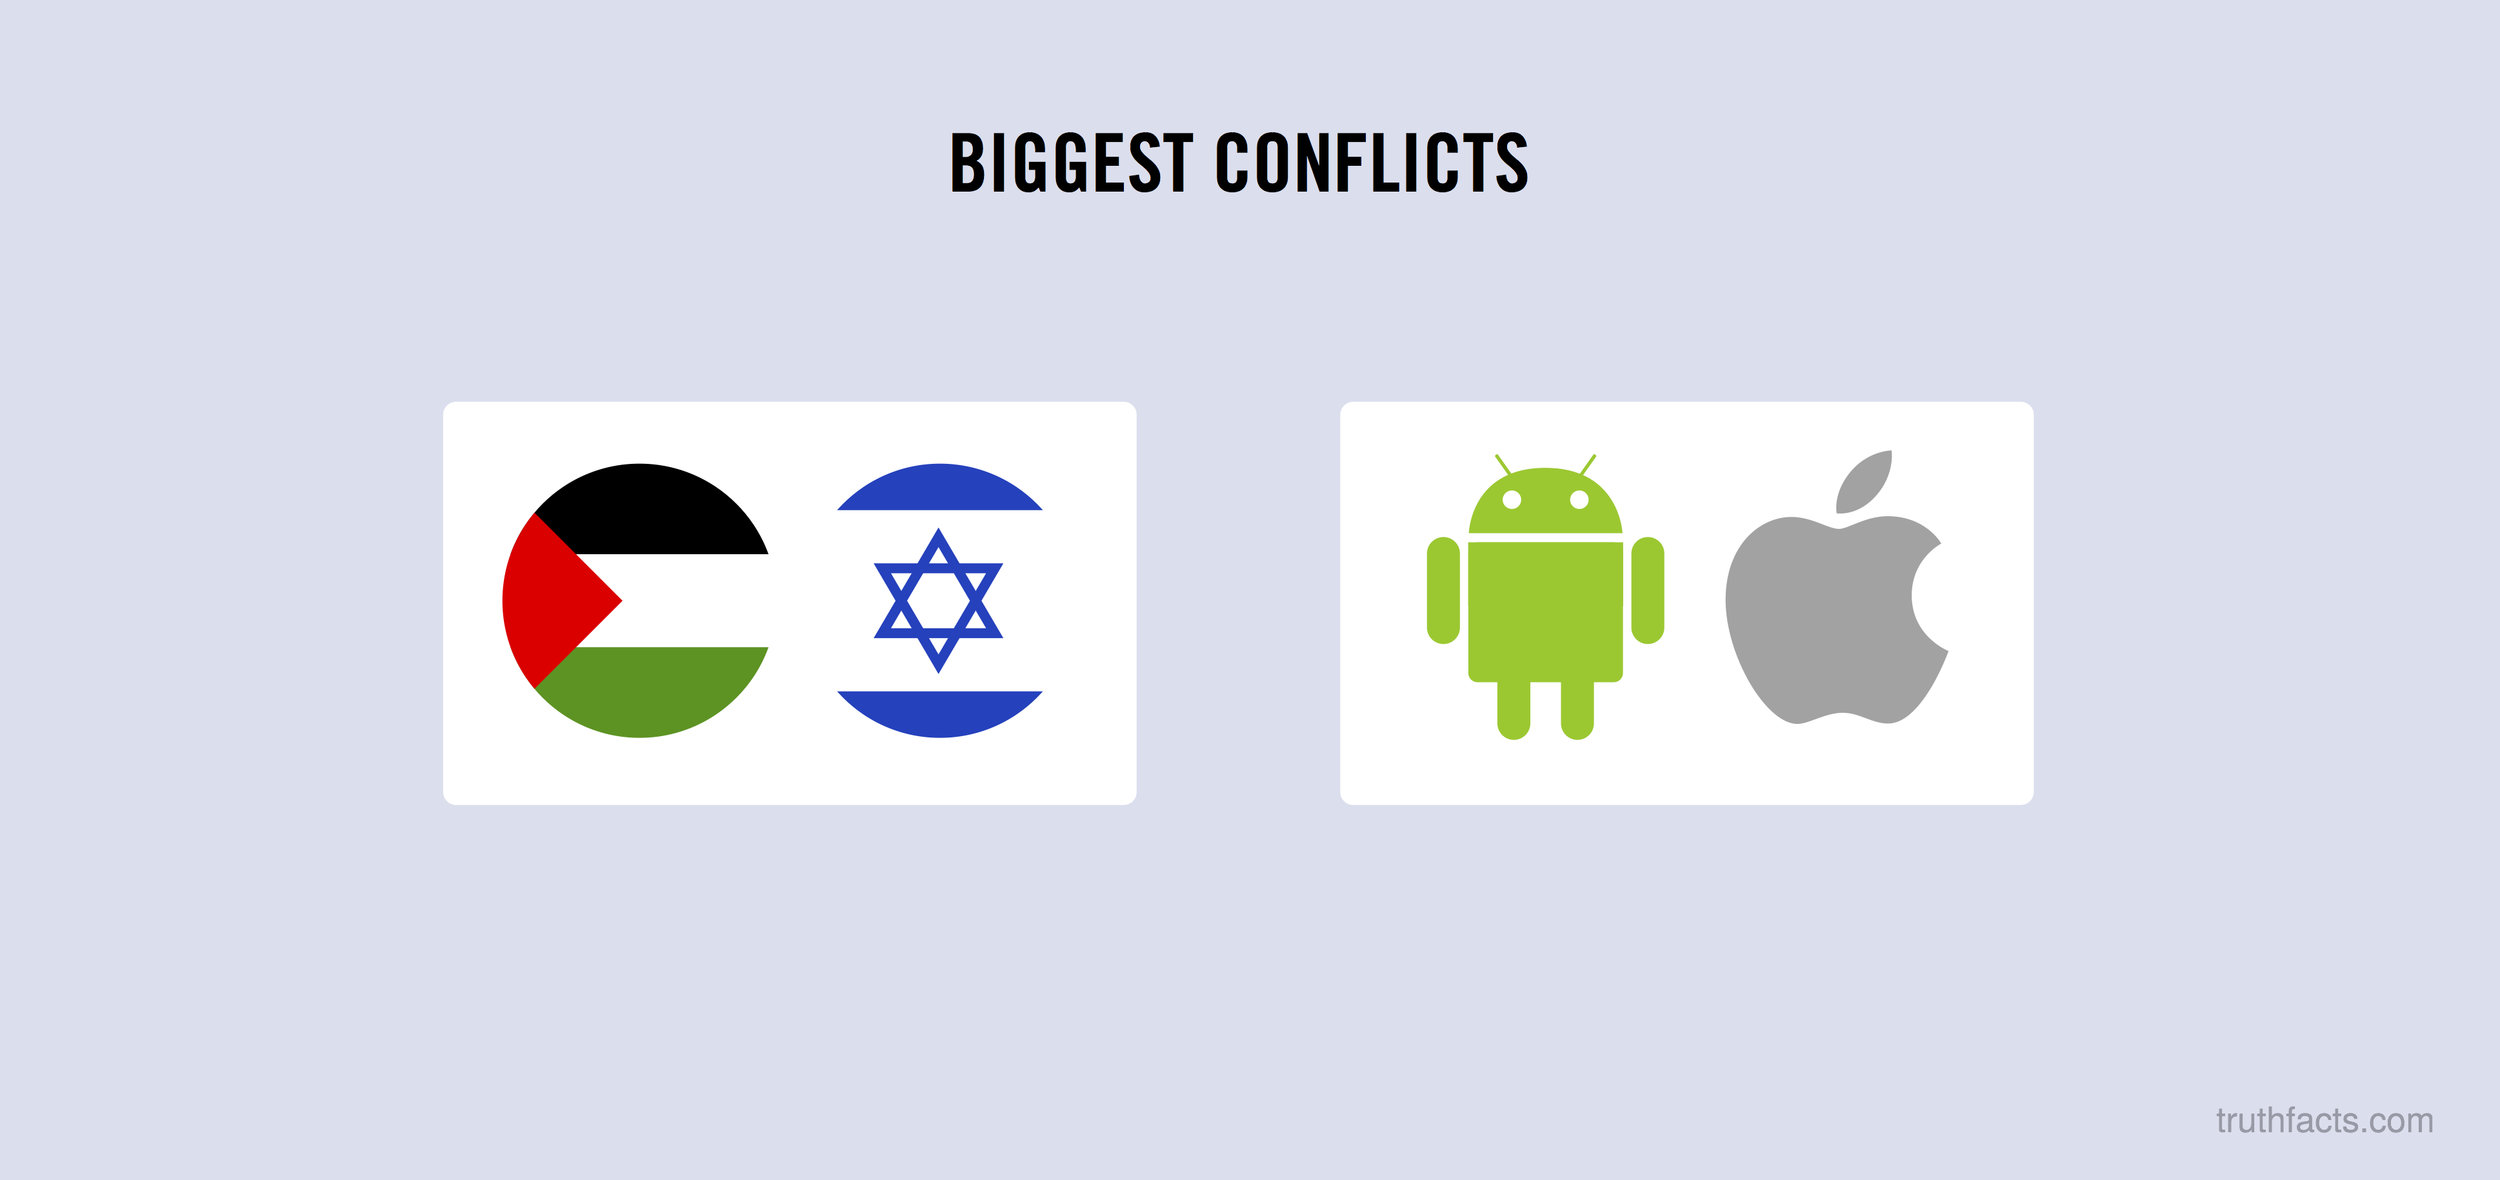 Biggest conflicts